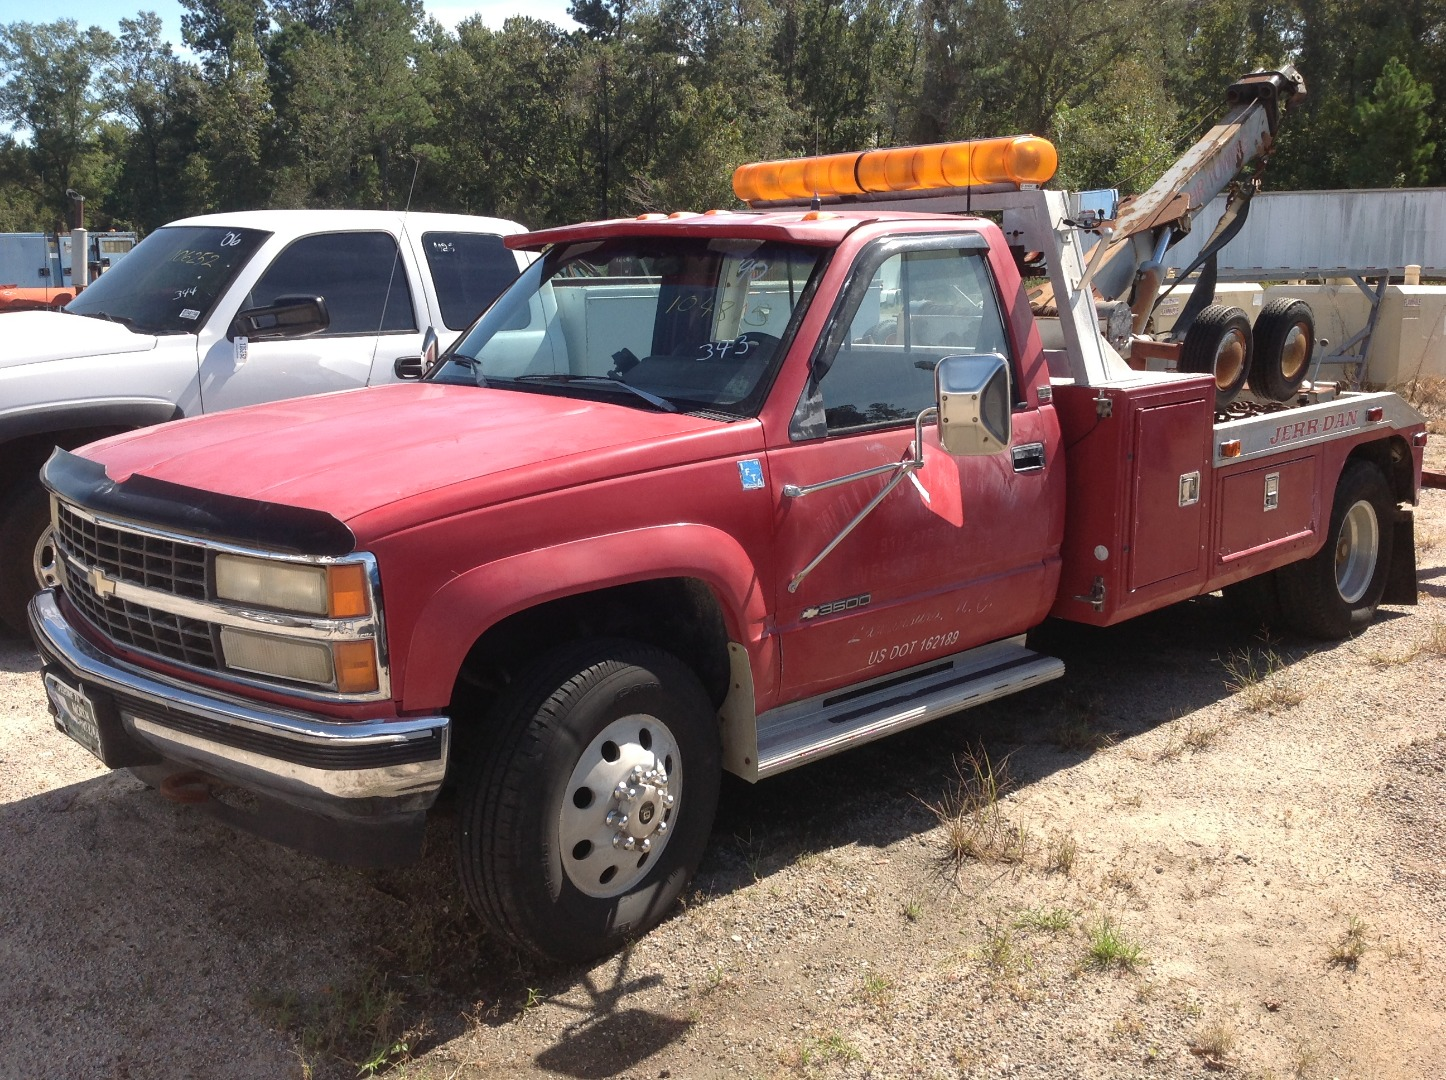 Immediate Sale Equipment Details World Net Auctions Live 2000 Ford F450 Fuel Tank 3500 Tow Truck